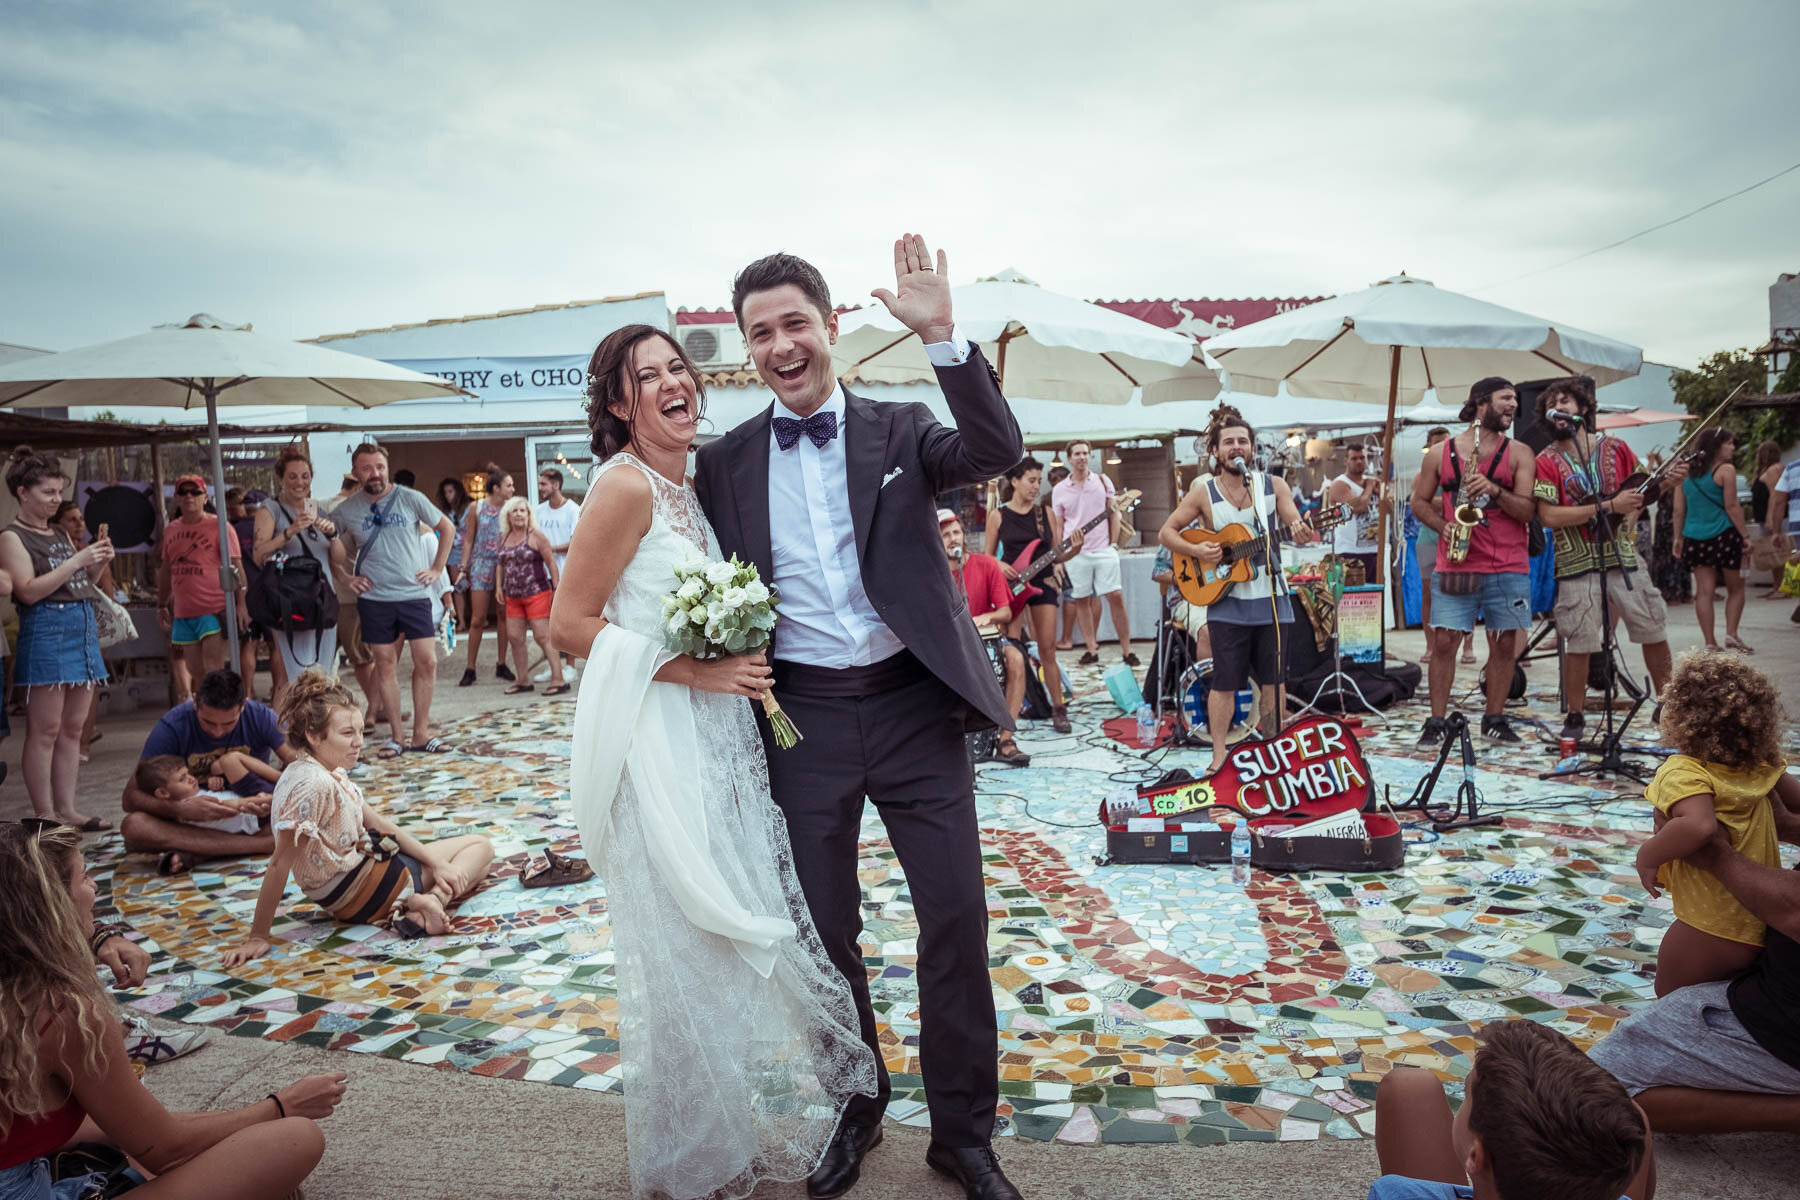 wedding formentera chezz gerdi 13.jpg